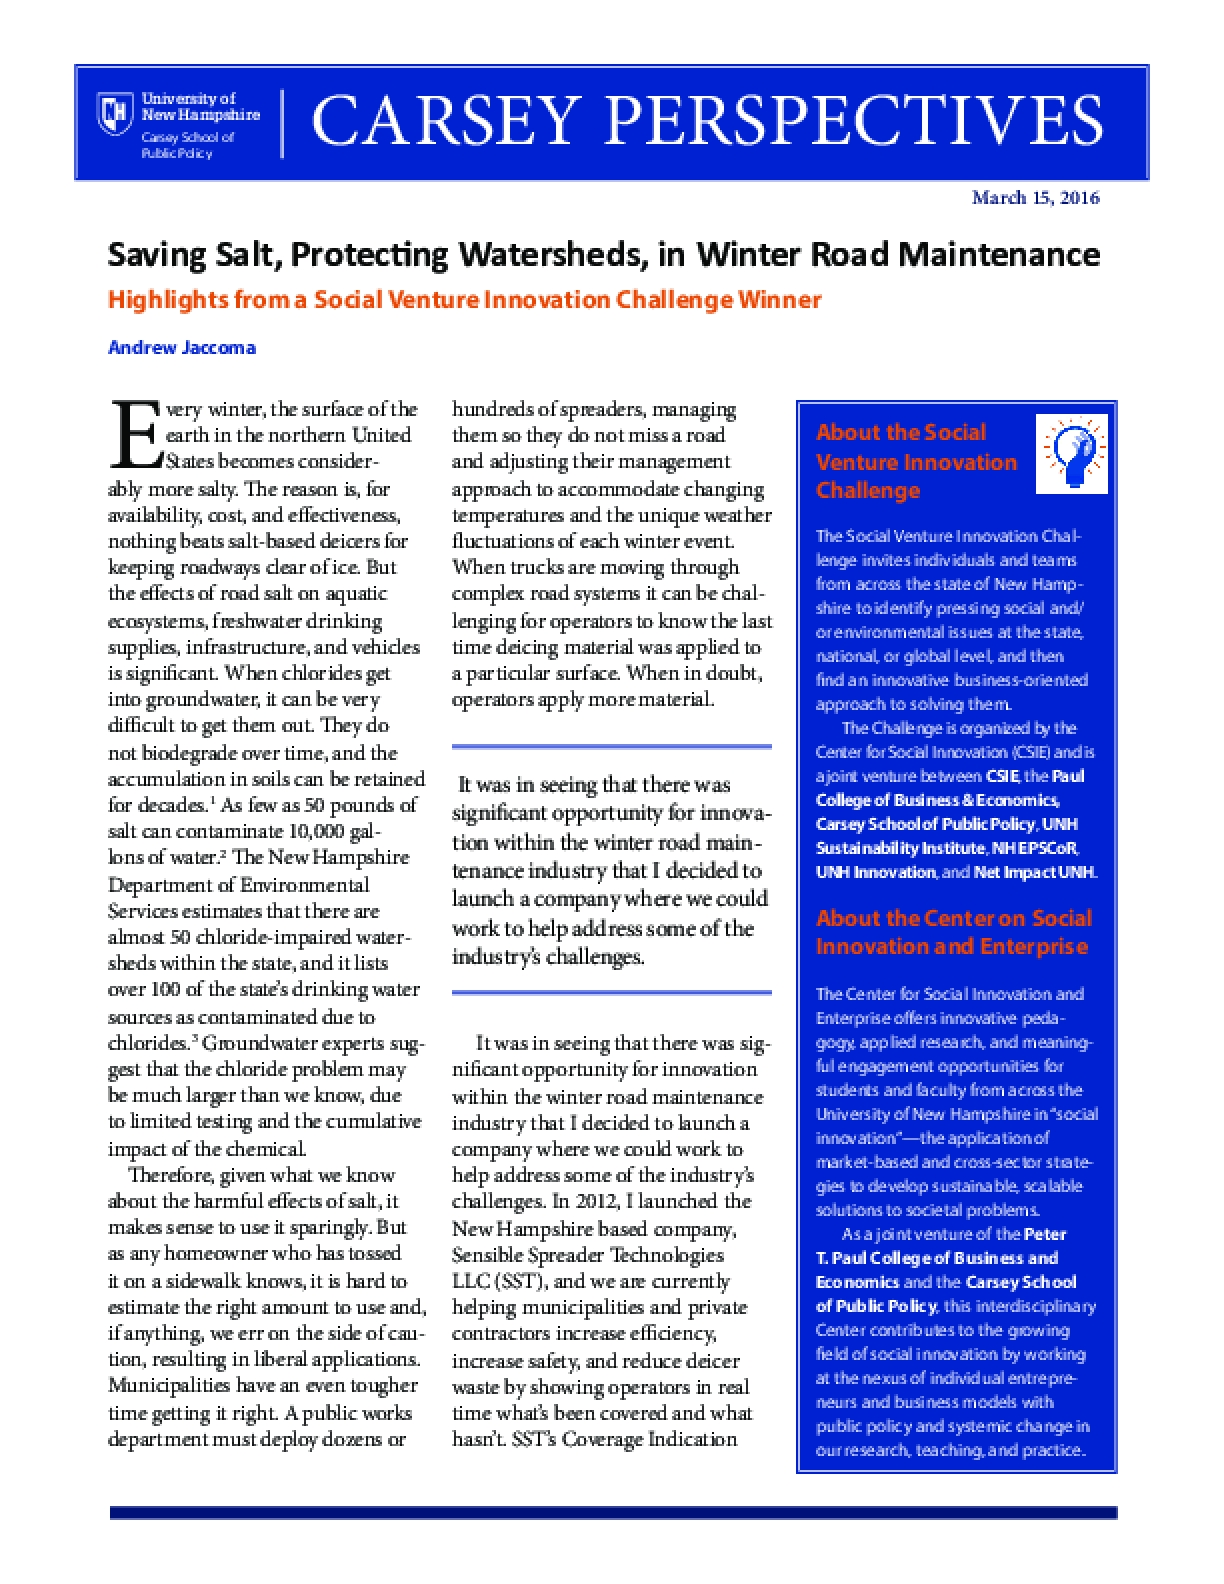 Carsey Perspectives: Saving Salt, Protecting Watersheds, in Winter Road Maintenance